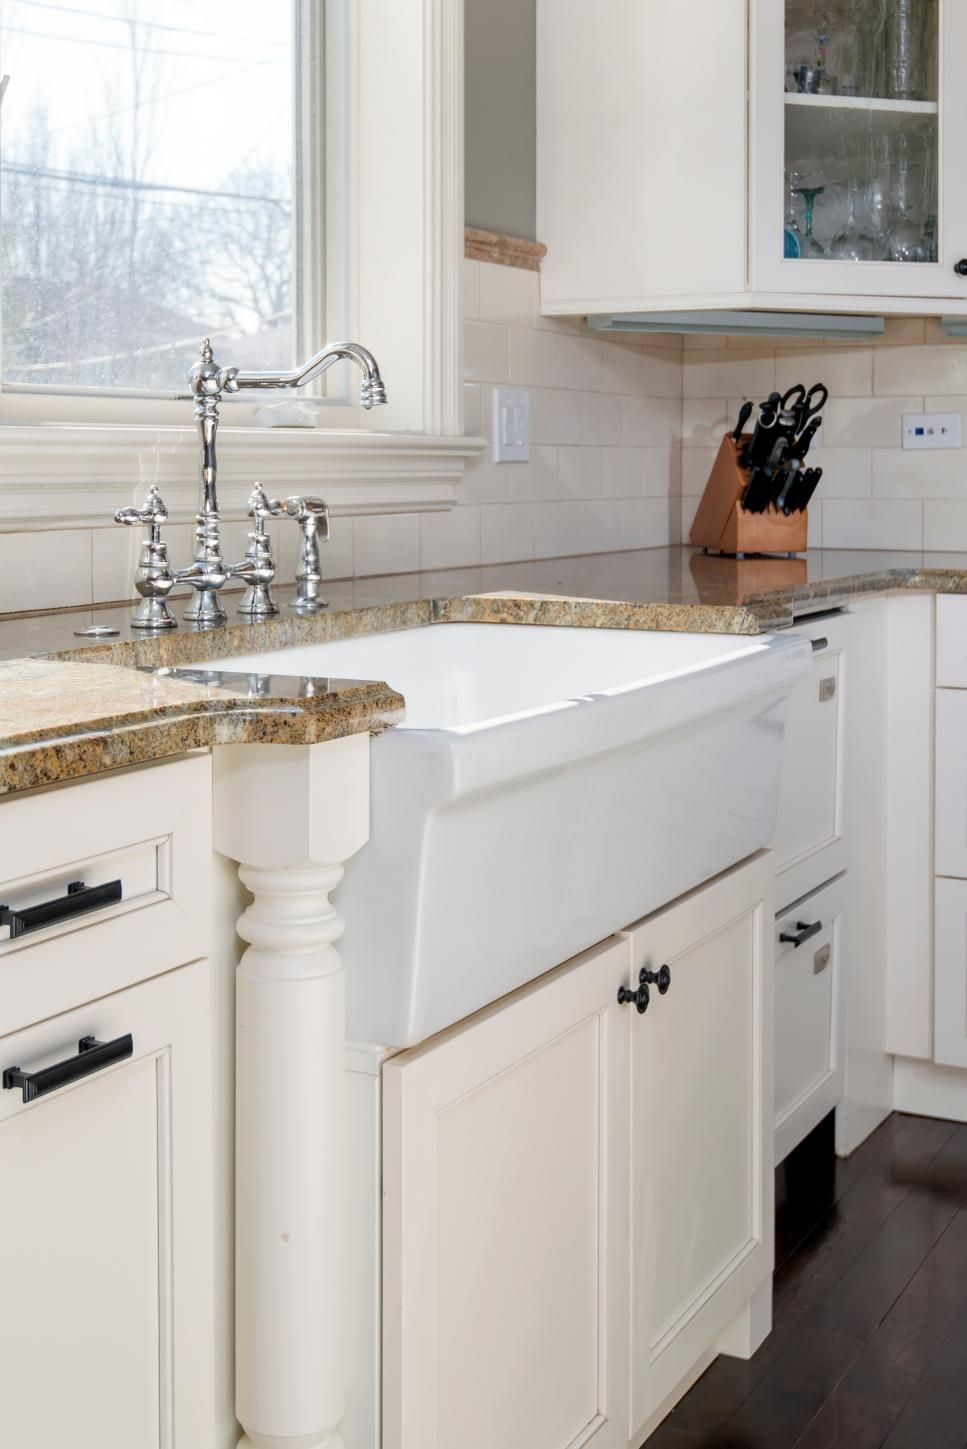 Fantastic Farmhouse Sinks Apron Front Sinks In Gorgeous Settings Farmhouse Style Kitchen White Farmhouse Sink Kitchen Styling